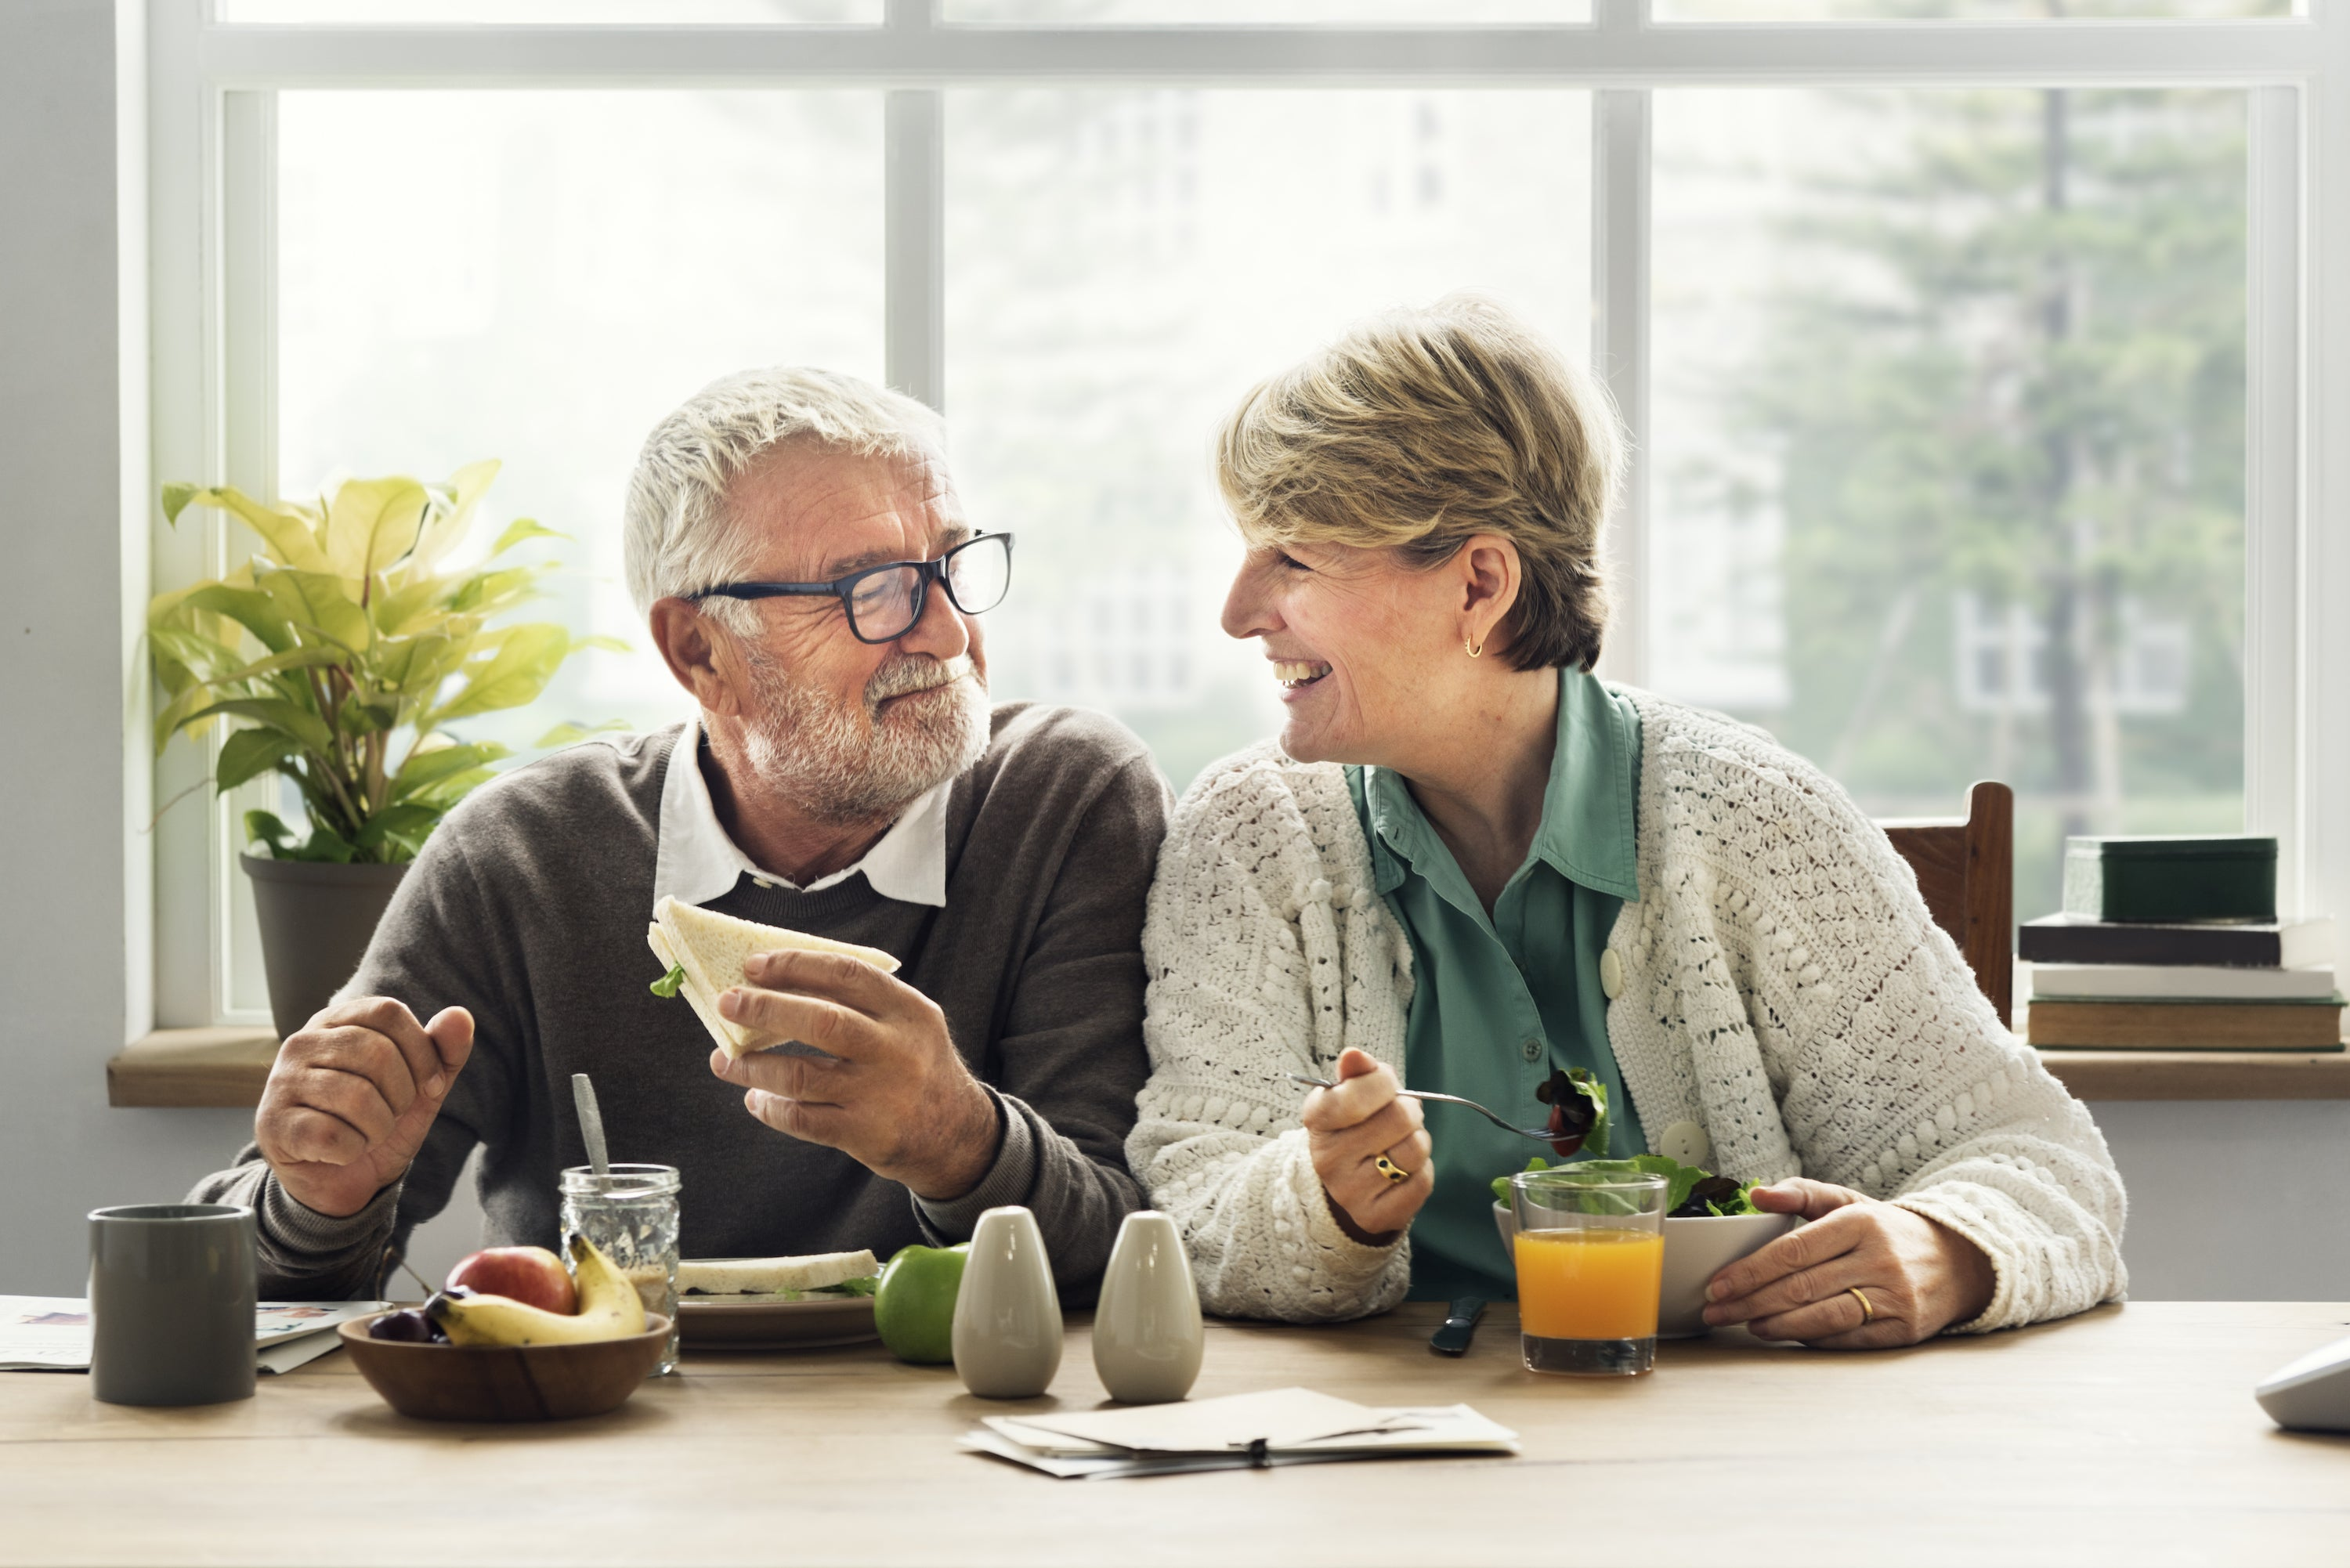 older couple smiling at each other while eating breakfast